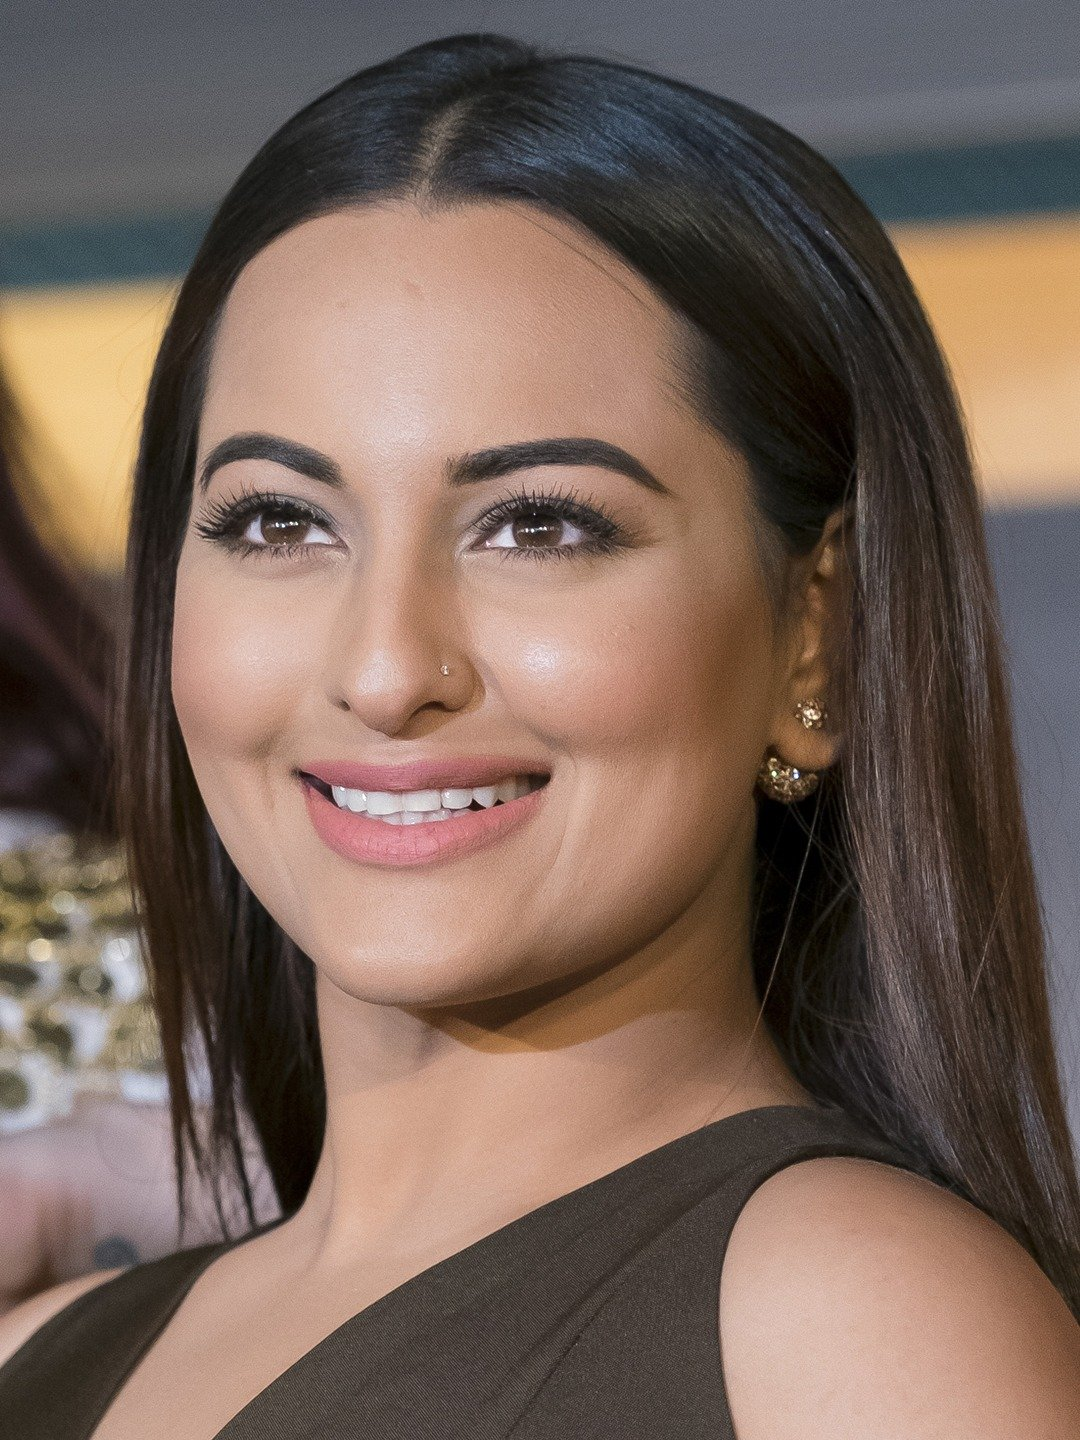 Communication on this topic: Georgia Holt, sonakshi-sinha/